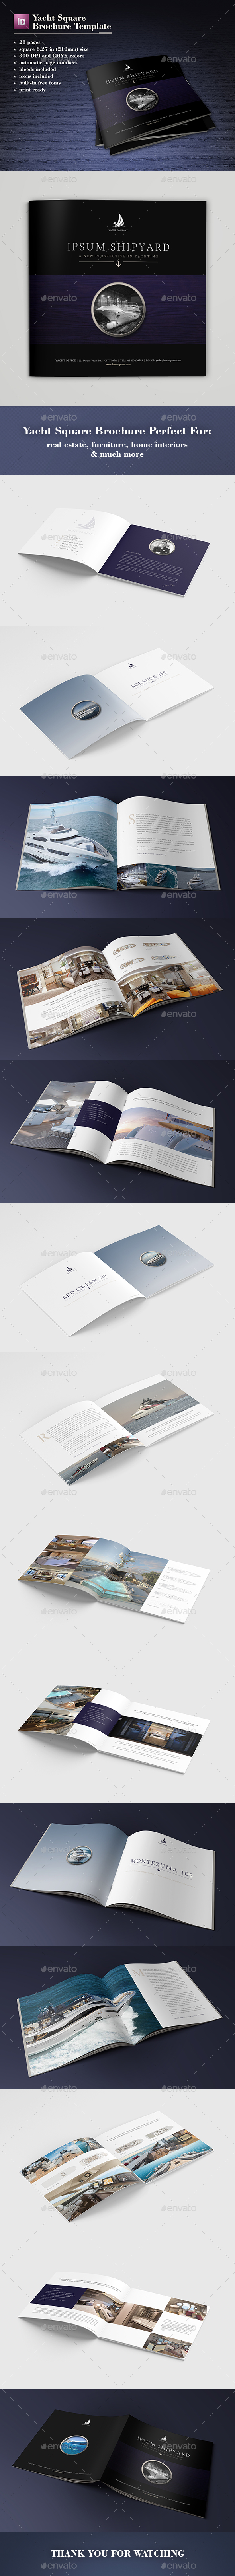 Yacht Square Brochure Template - Catalogs Brochures